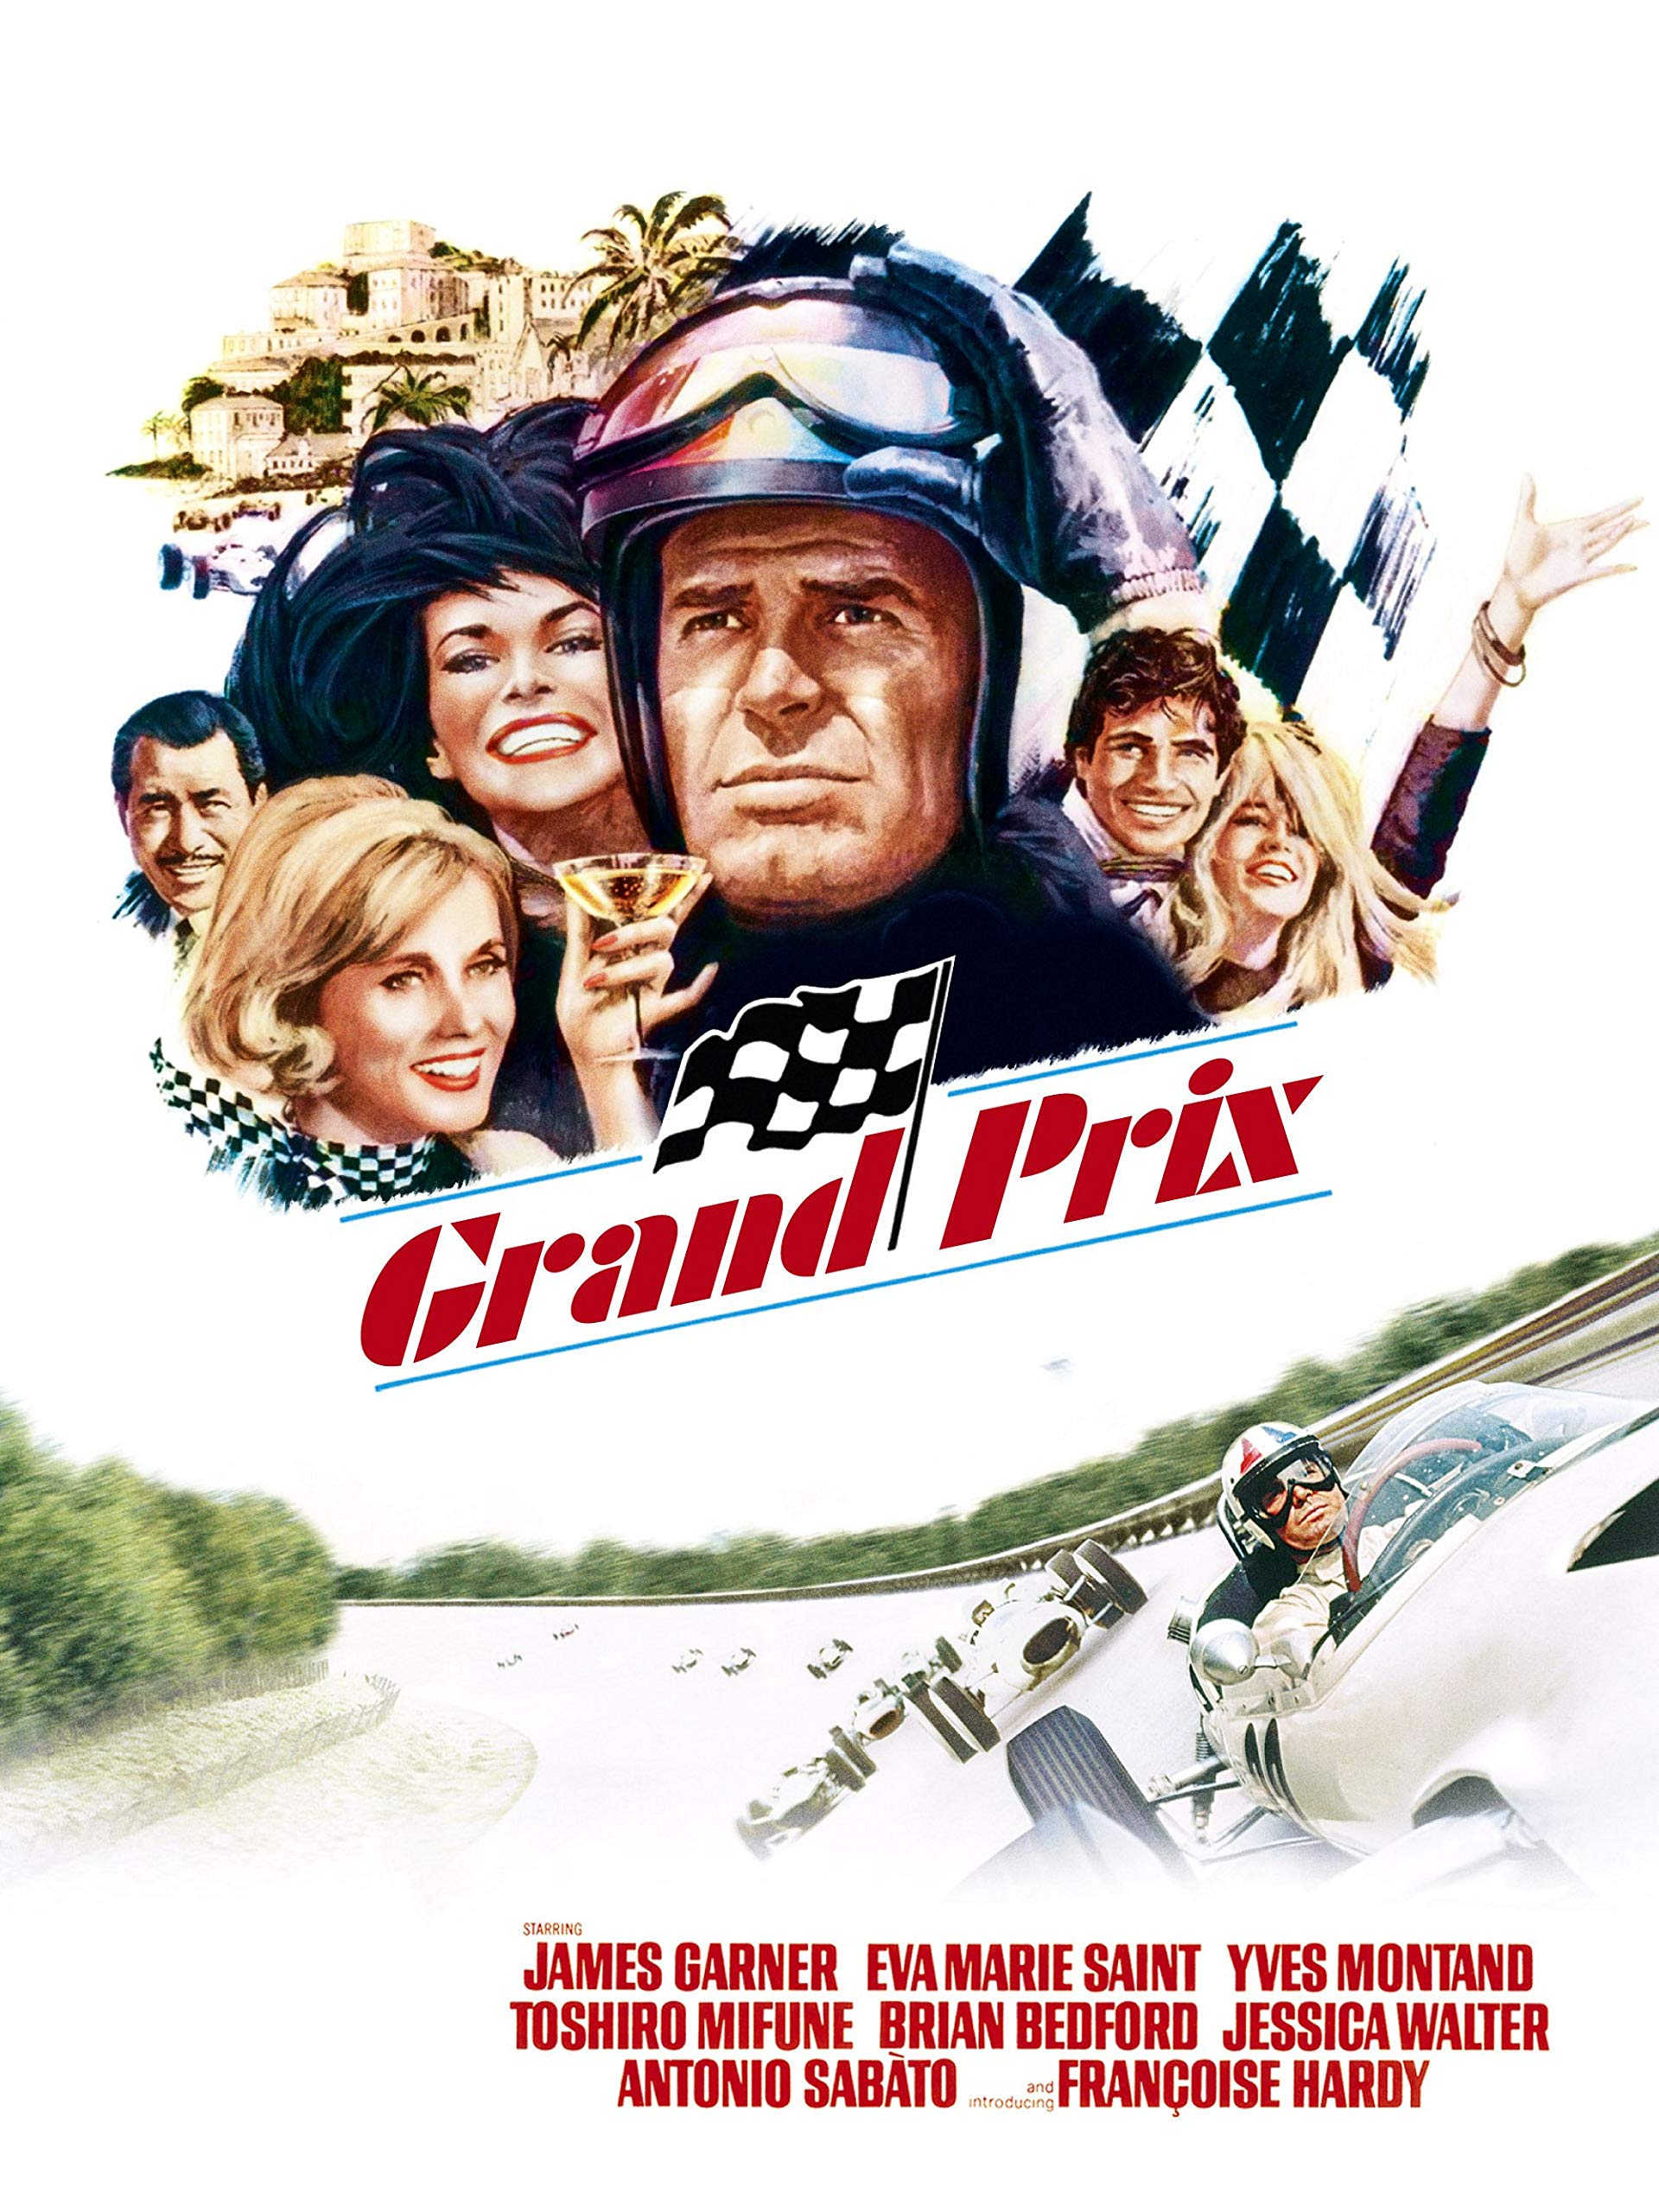 Grand Prix Movie Motion Picture Poster Starring James Garner